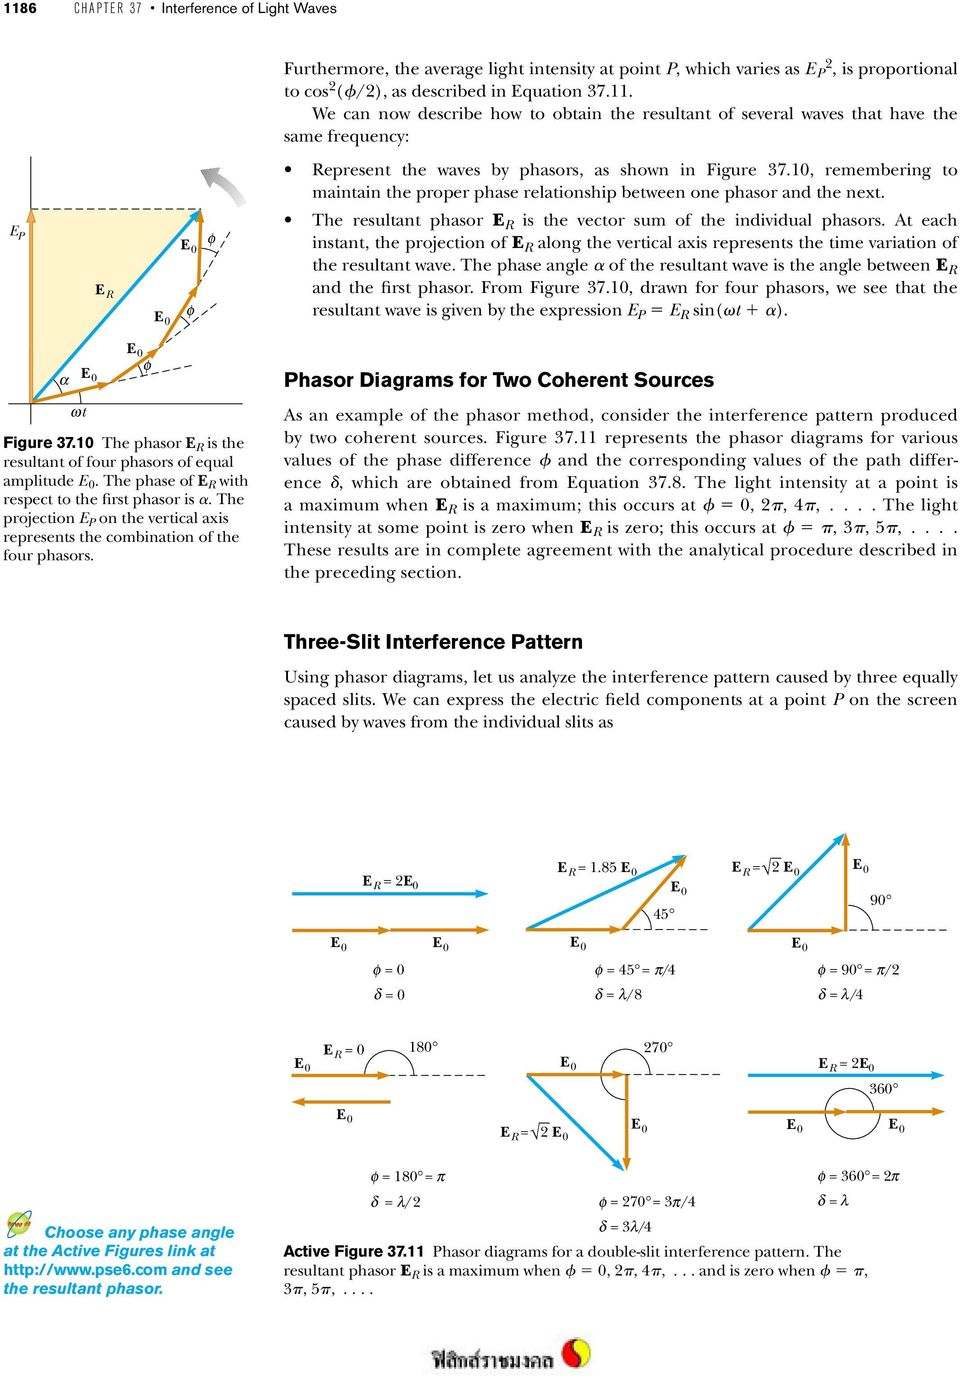 Interference Of Light Waves Pdf Phasor Diagram A Sinusoidal Waveform At Each Instant The Projection E R Along Vertical Axis Represents Time Variation